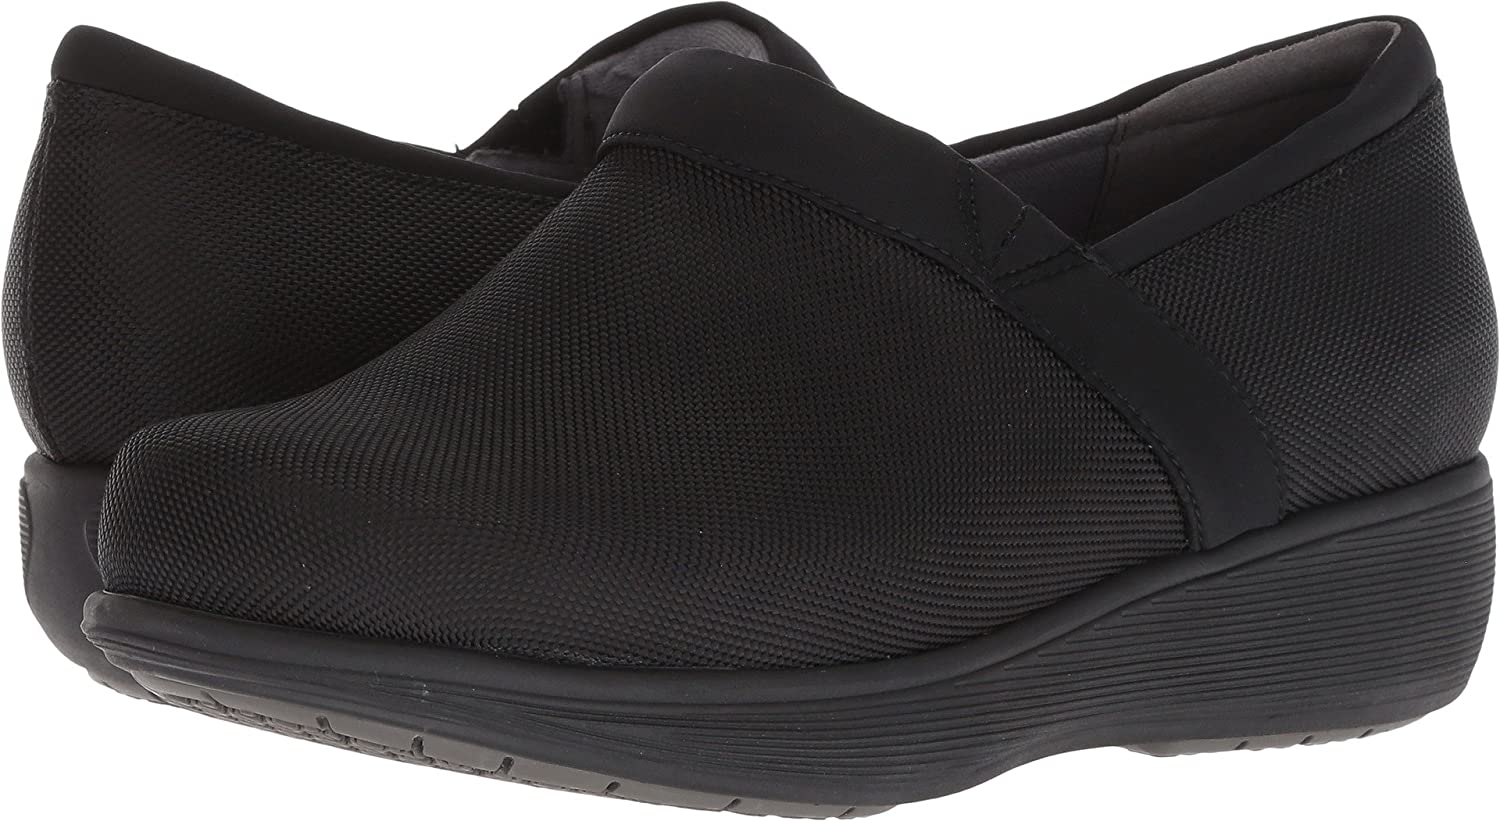 SoftWalk Women's Meredith Clog B07D7QTFVN 8 D US|Black Ballistic